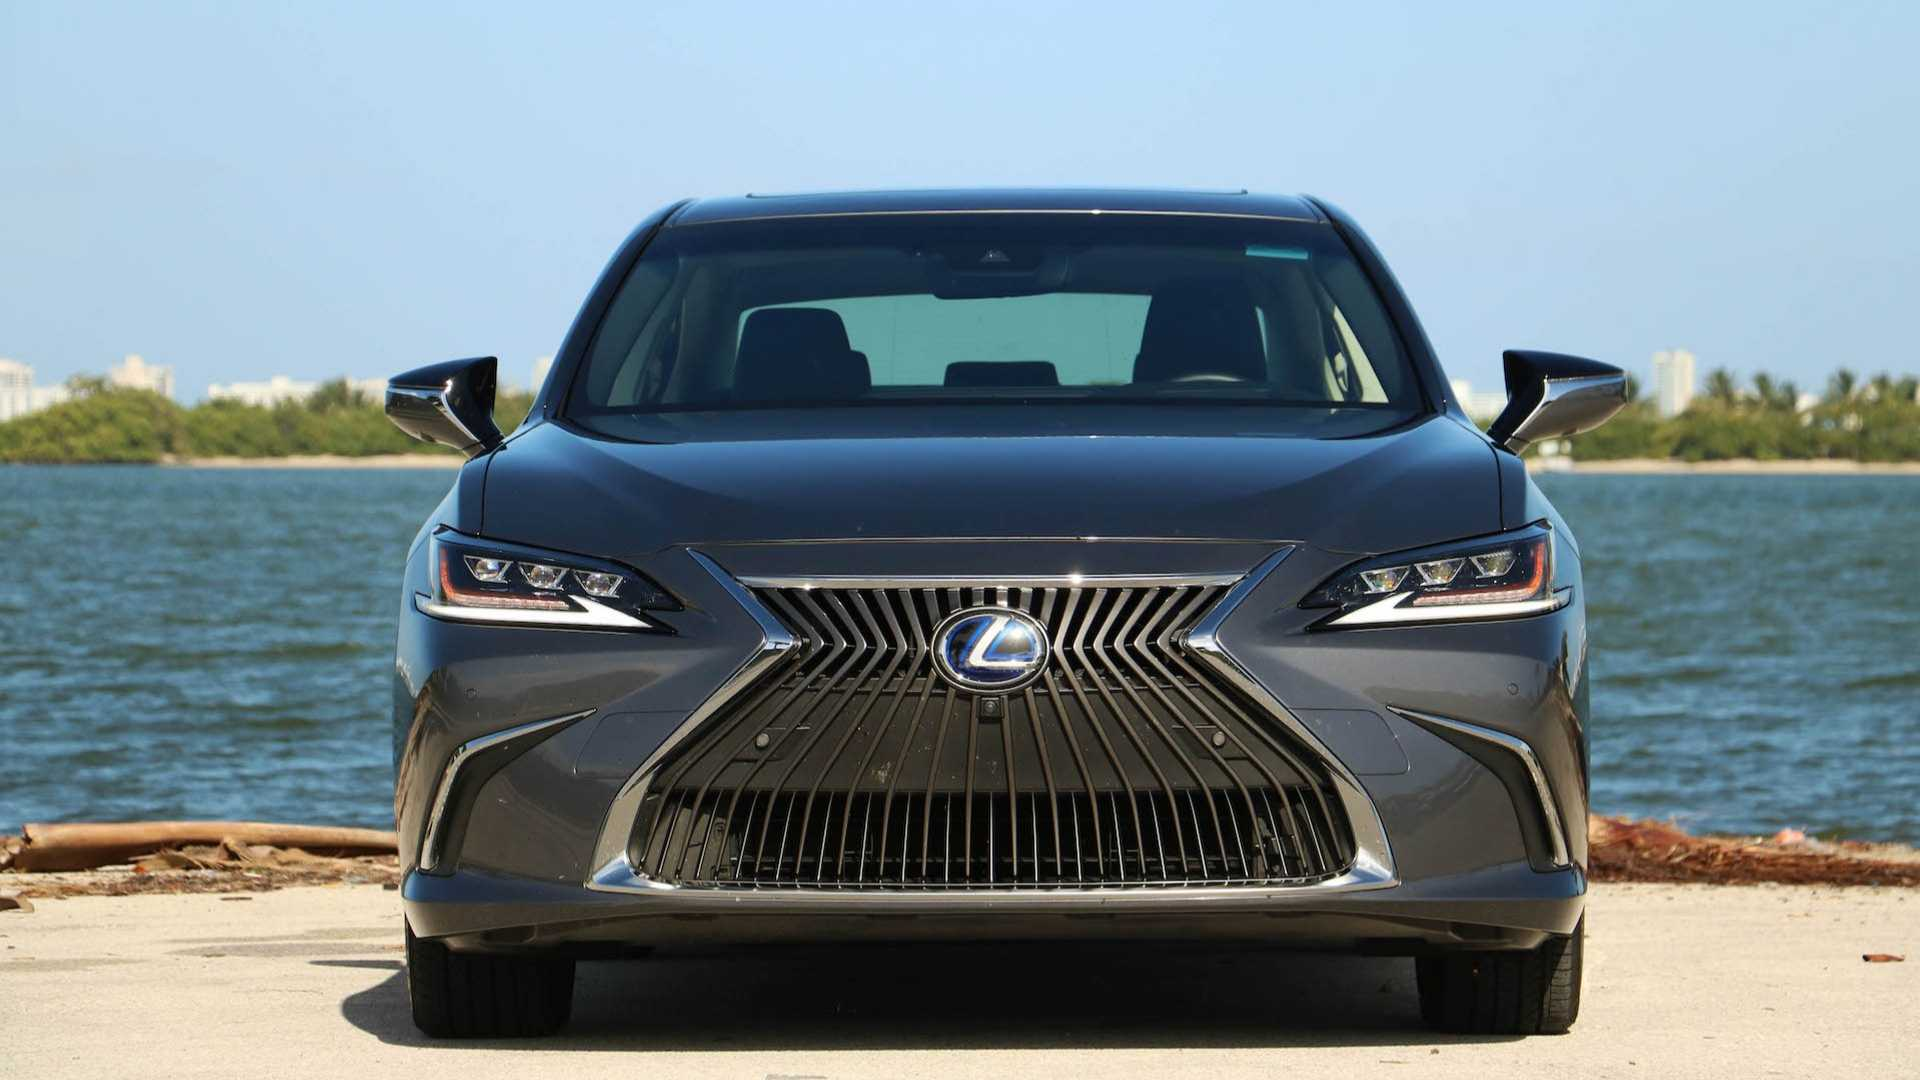 2019 Lexus ES 300h Luxury Review: Hitting The Reset Button